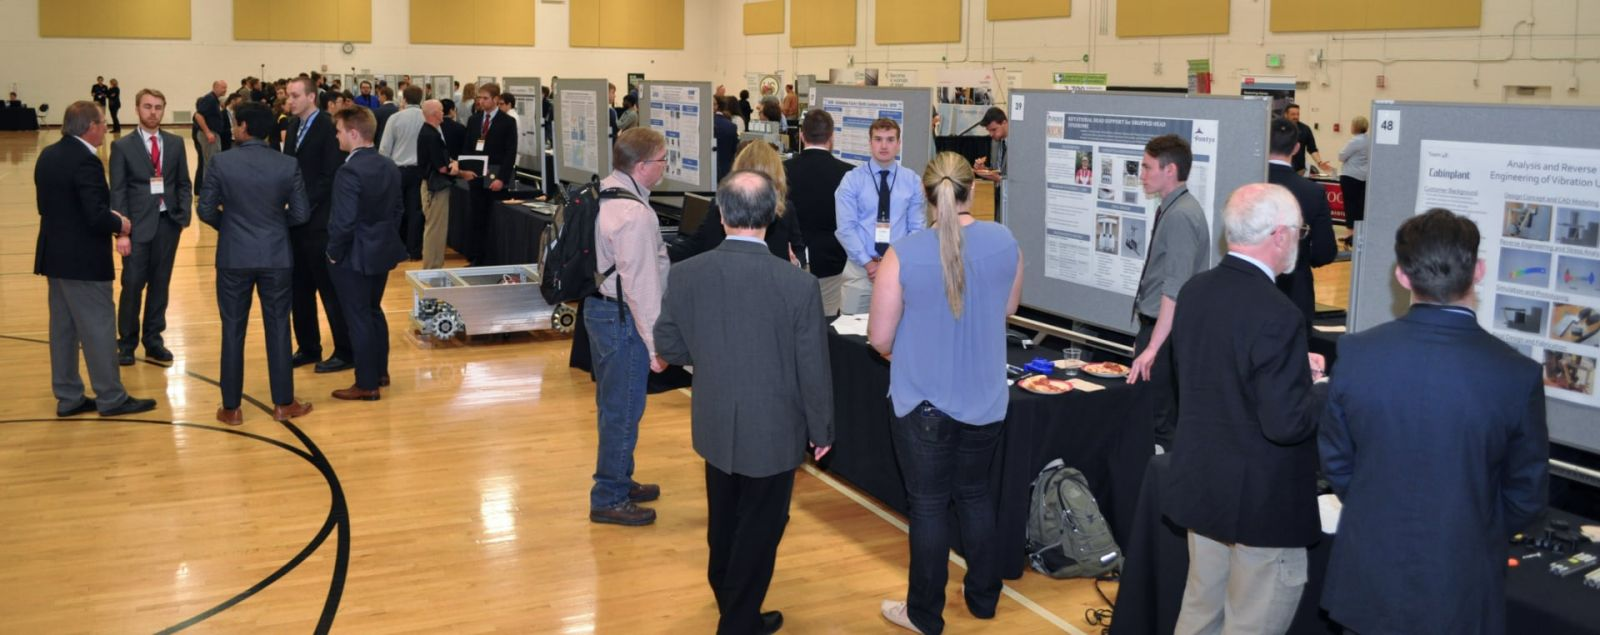 Purdue Polytechnic's Tech Expo is both a business-to-business trade show and presentations of students' capstone projects